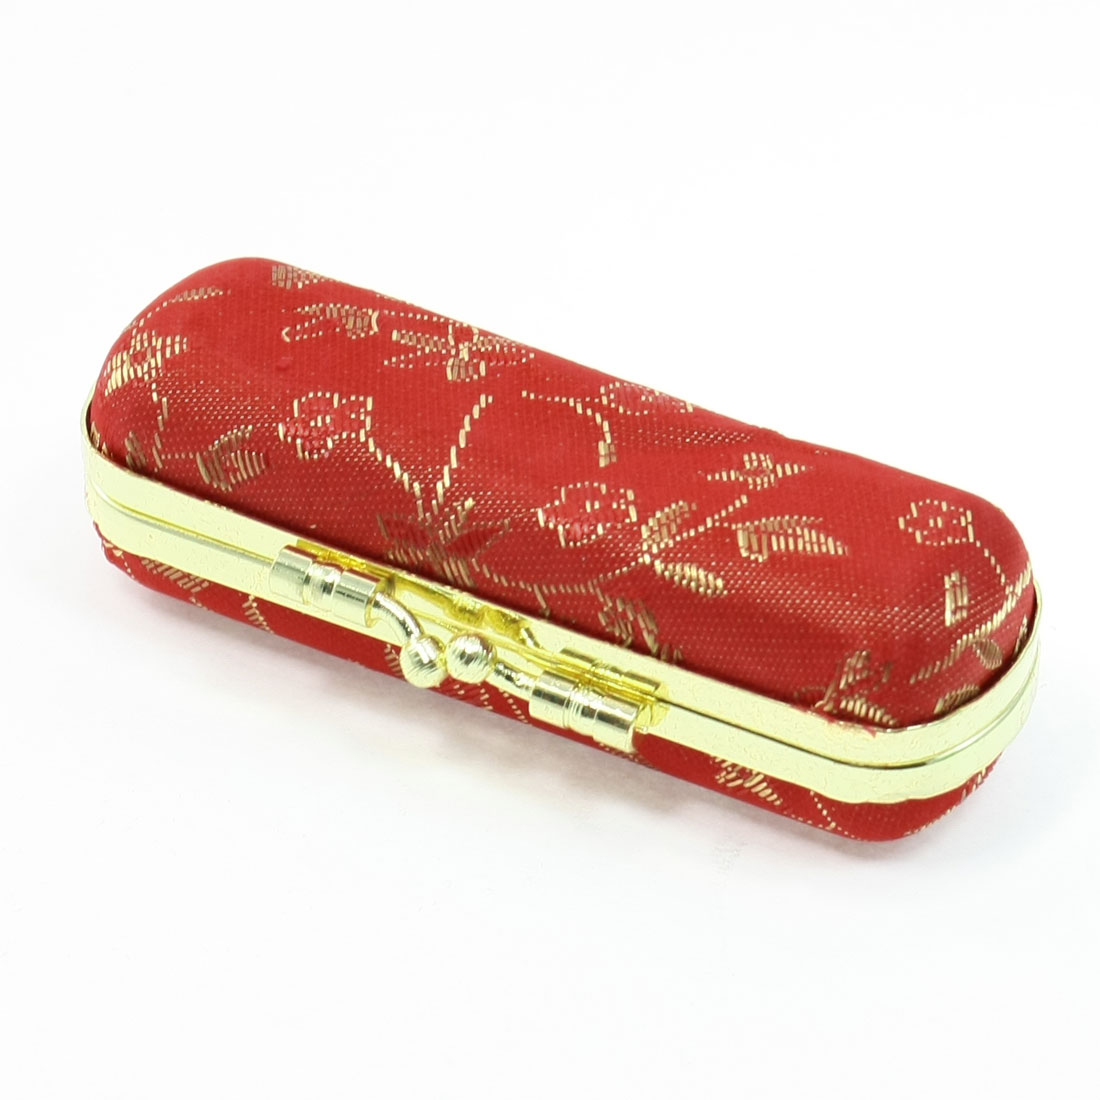 Kiss Lock Closure Flannel Lining Embroidery Lipstick Case Red for Ladies Women